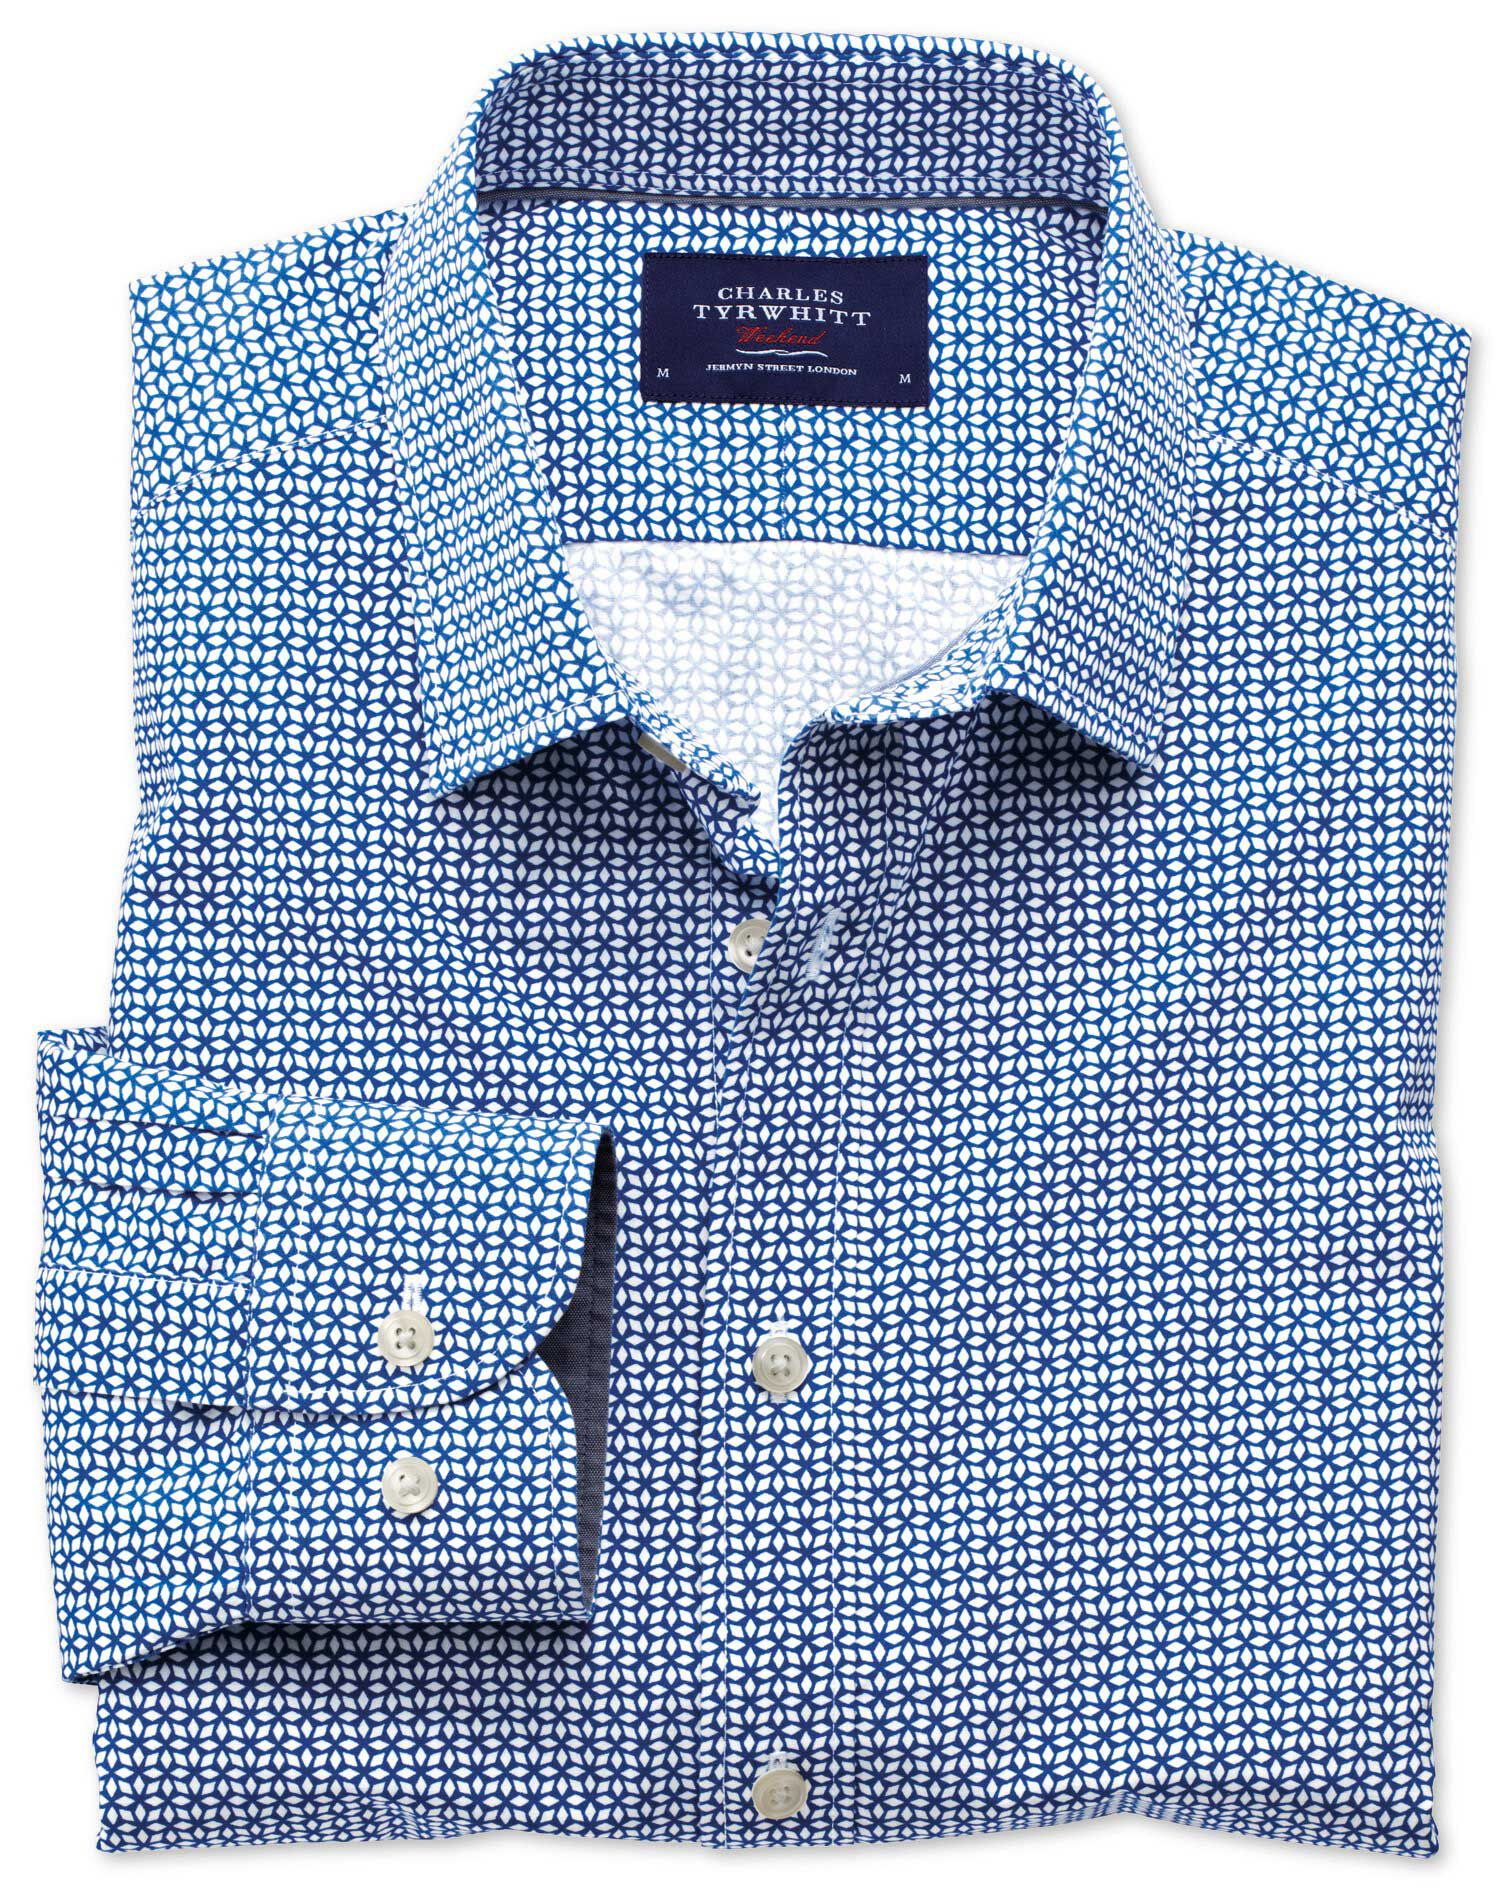 Slim Fit Royal and White Geometric Print Cotton Shirt Single Cuff Size Medium by Charles Tyrwhitt